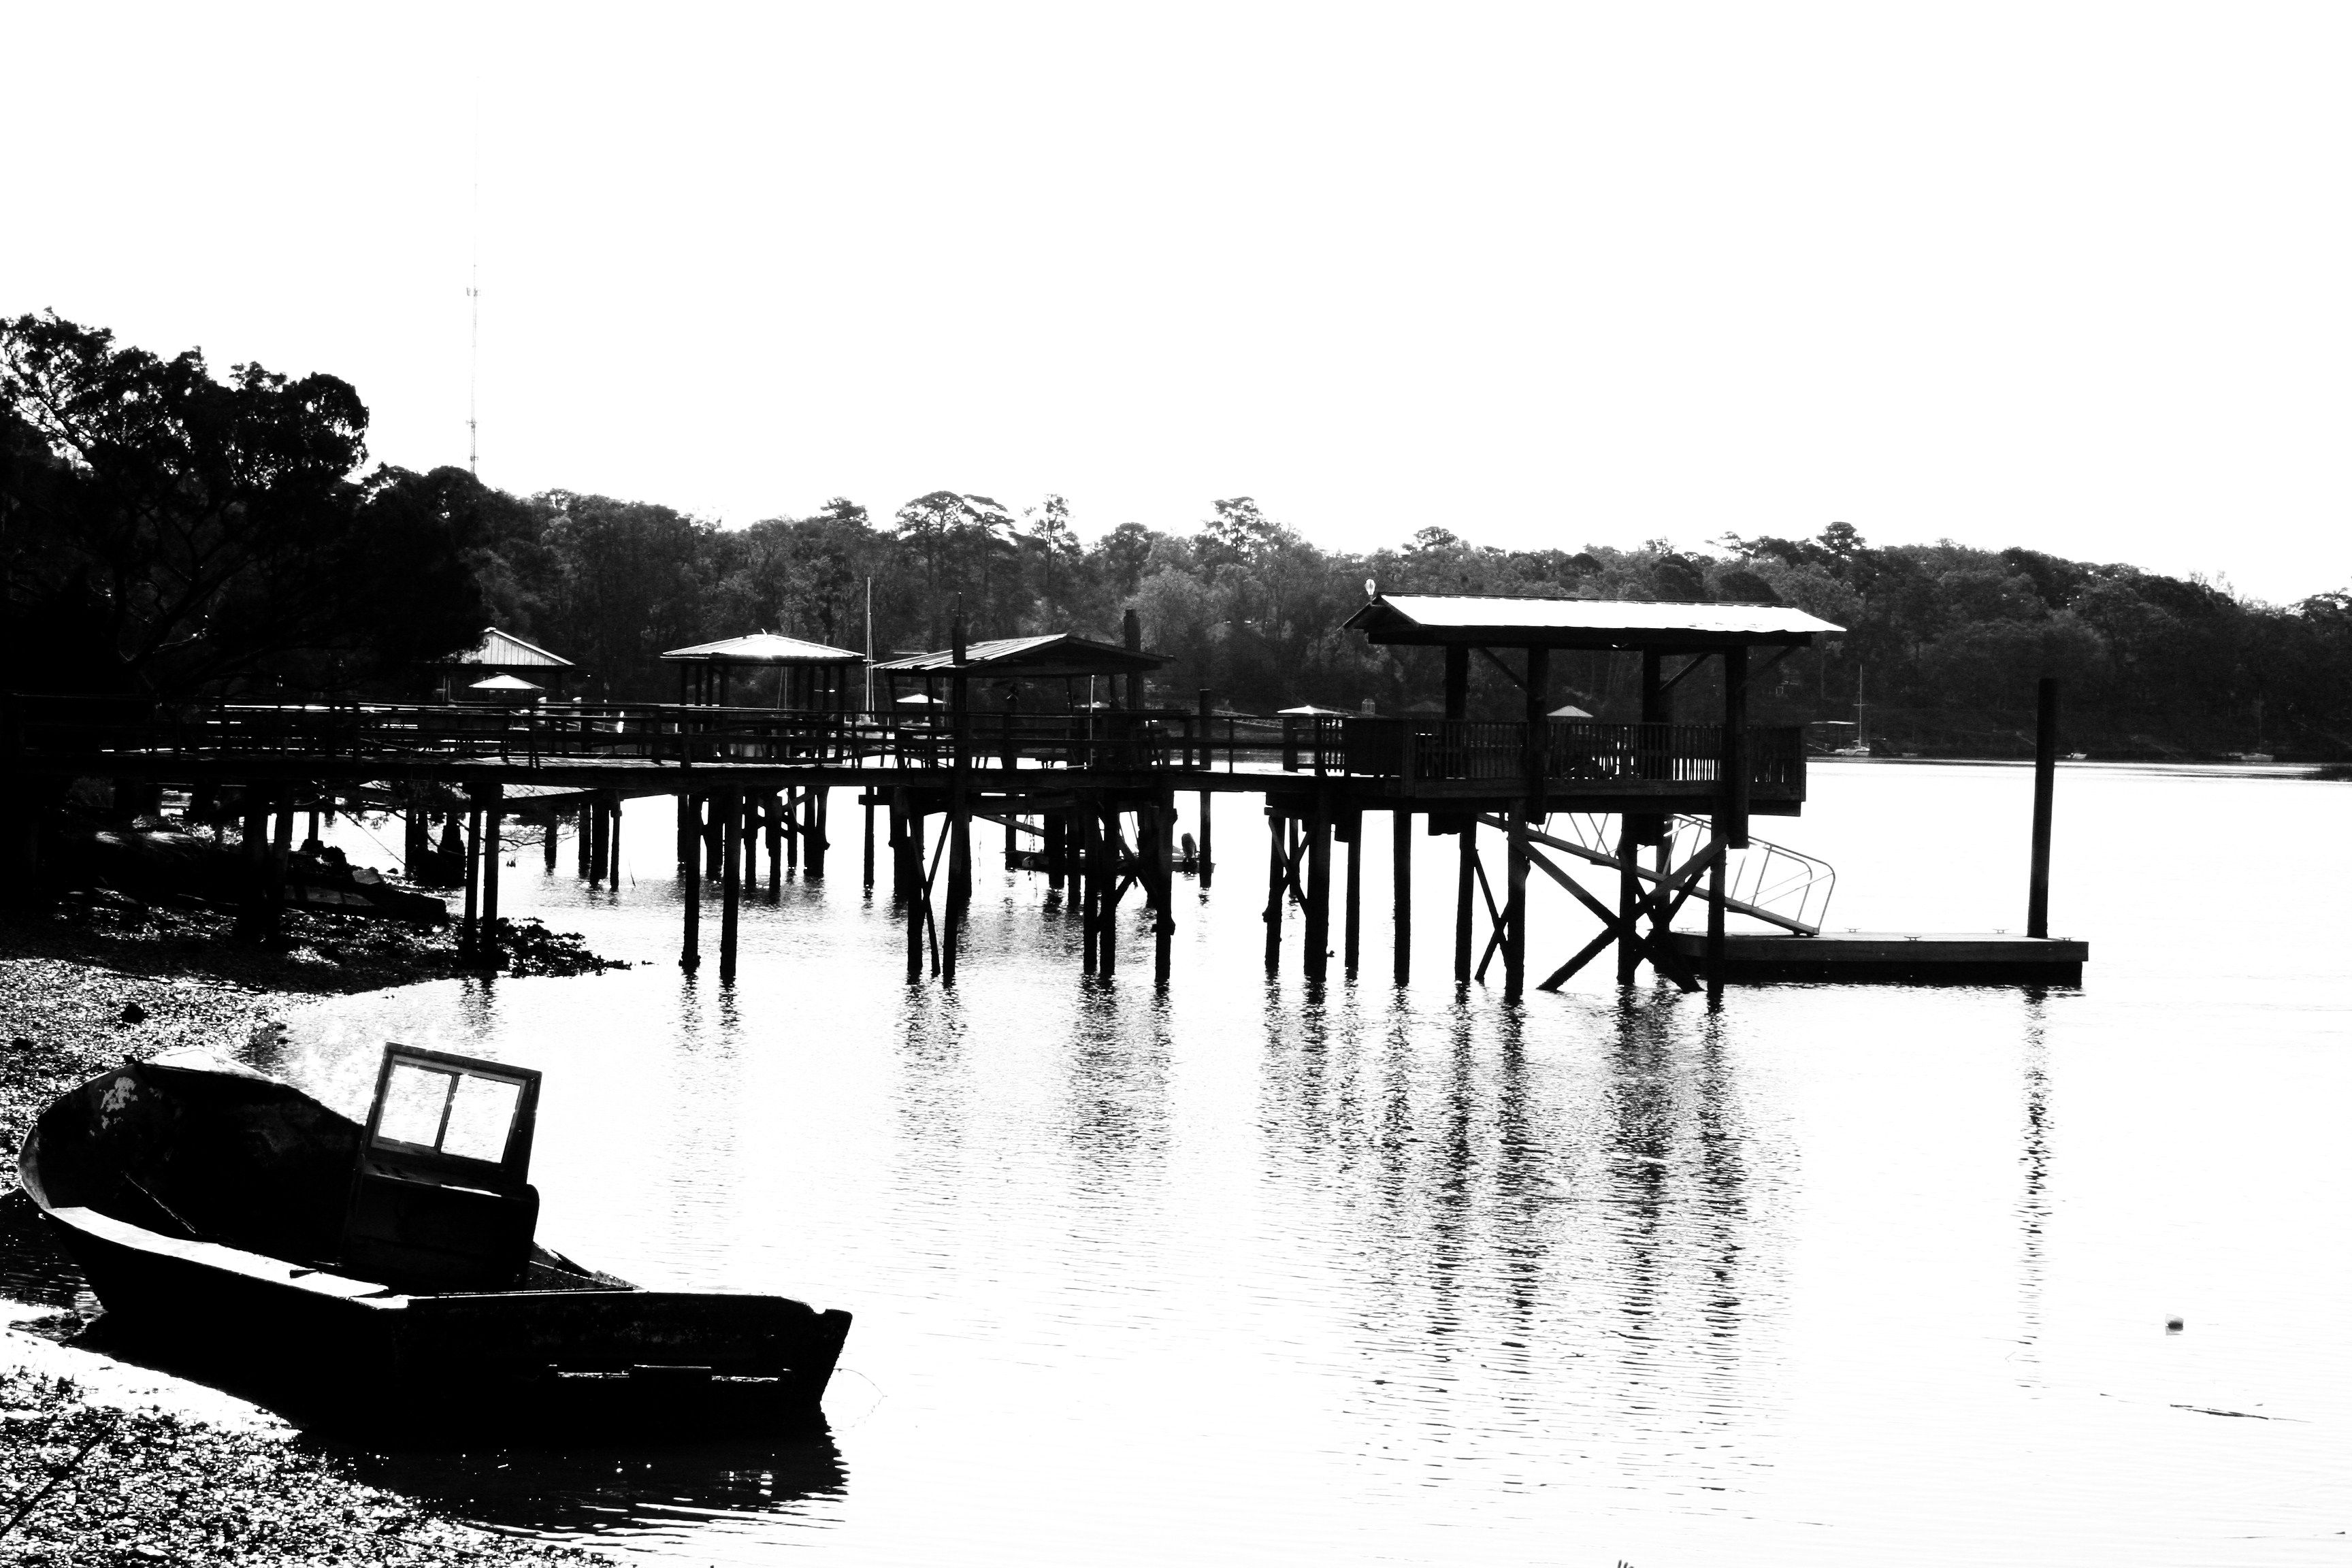 This is our family's dock in the picture! Hilton head